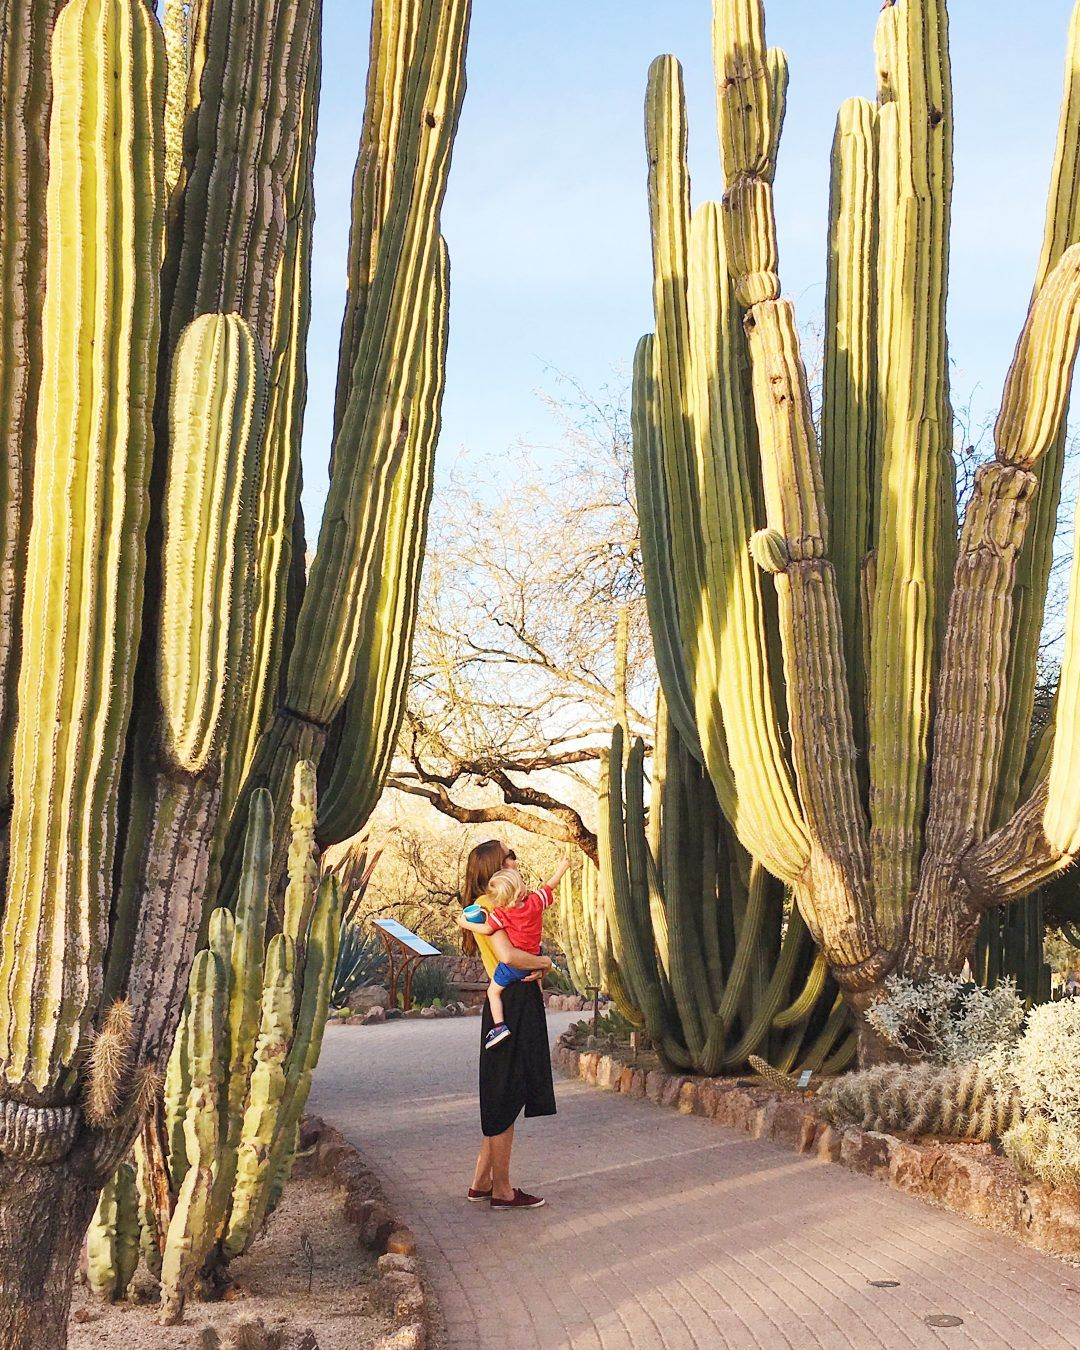 The Ultimate Arizona Bucket List: 101 Things to Do